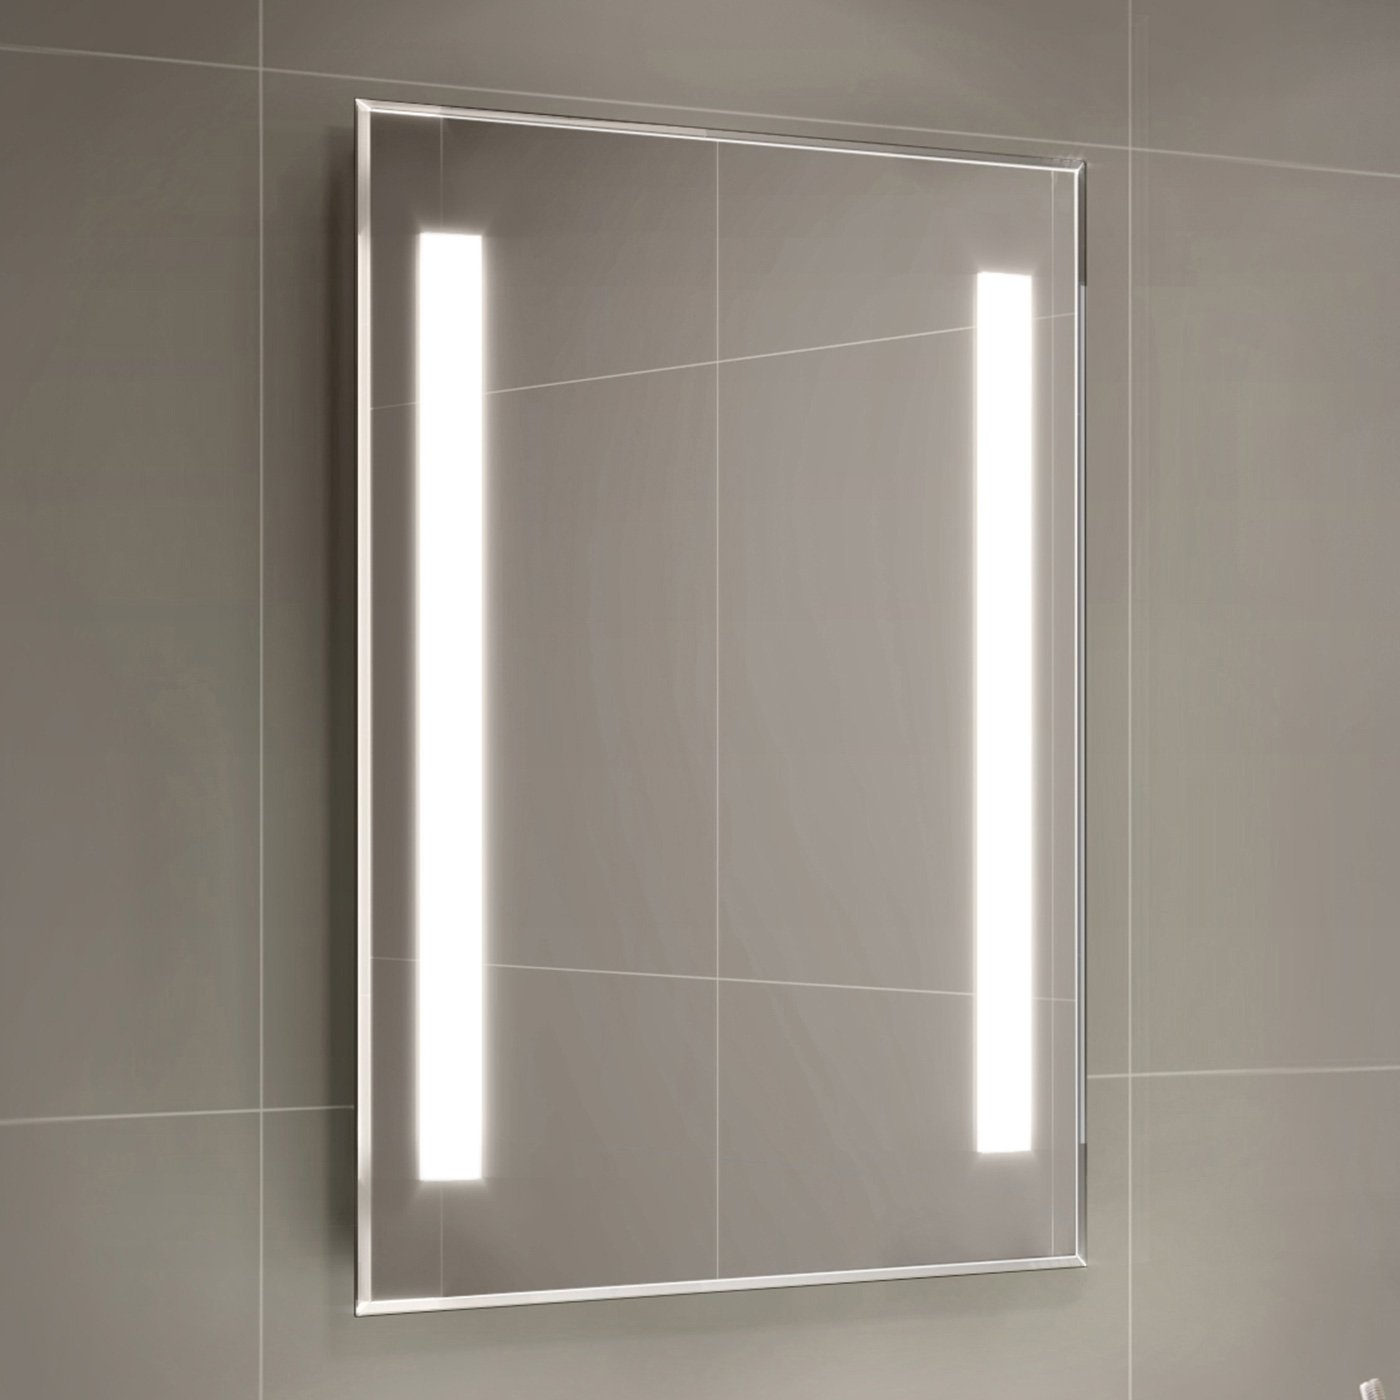 500 x 700 mm Modern Illuminated Backlit LED Bathroom Mirror Light ML2107 iBathUK